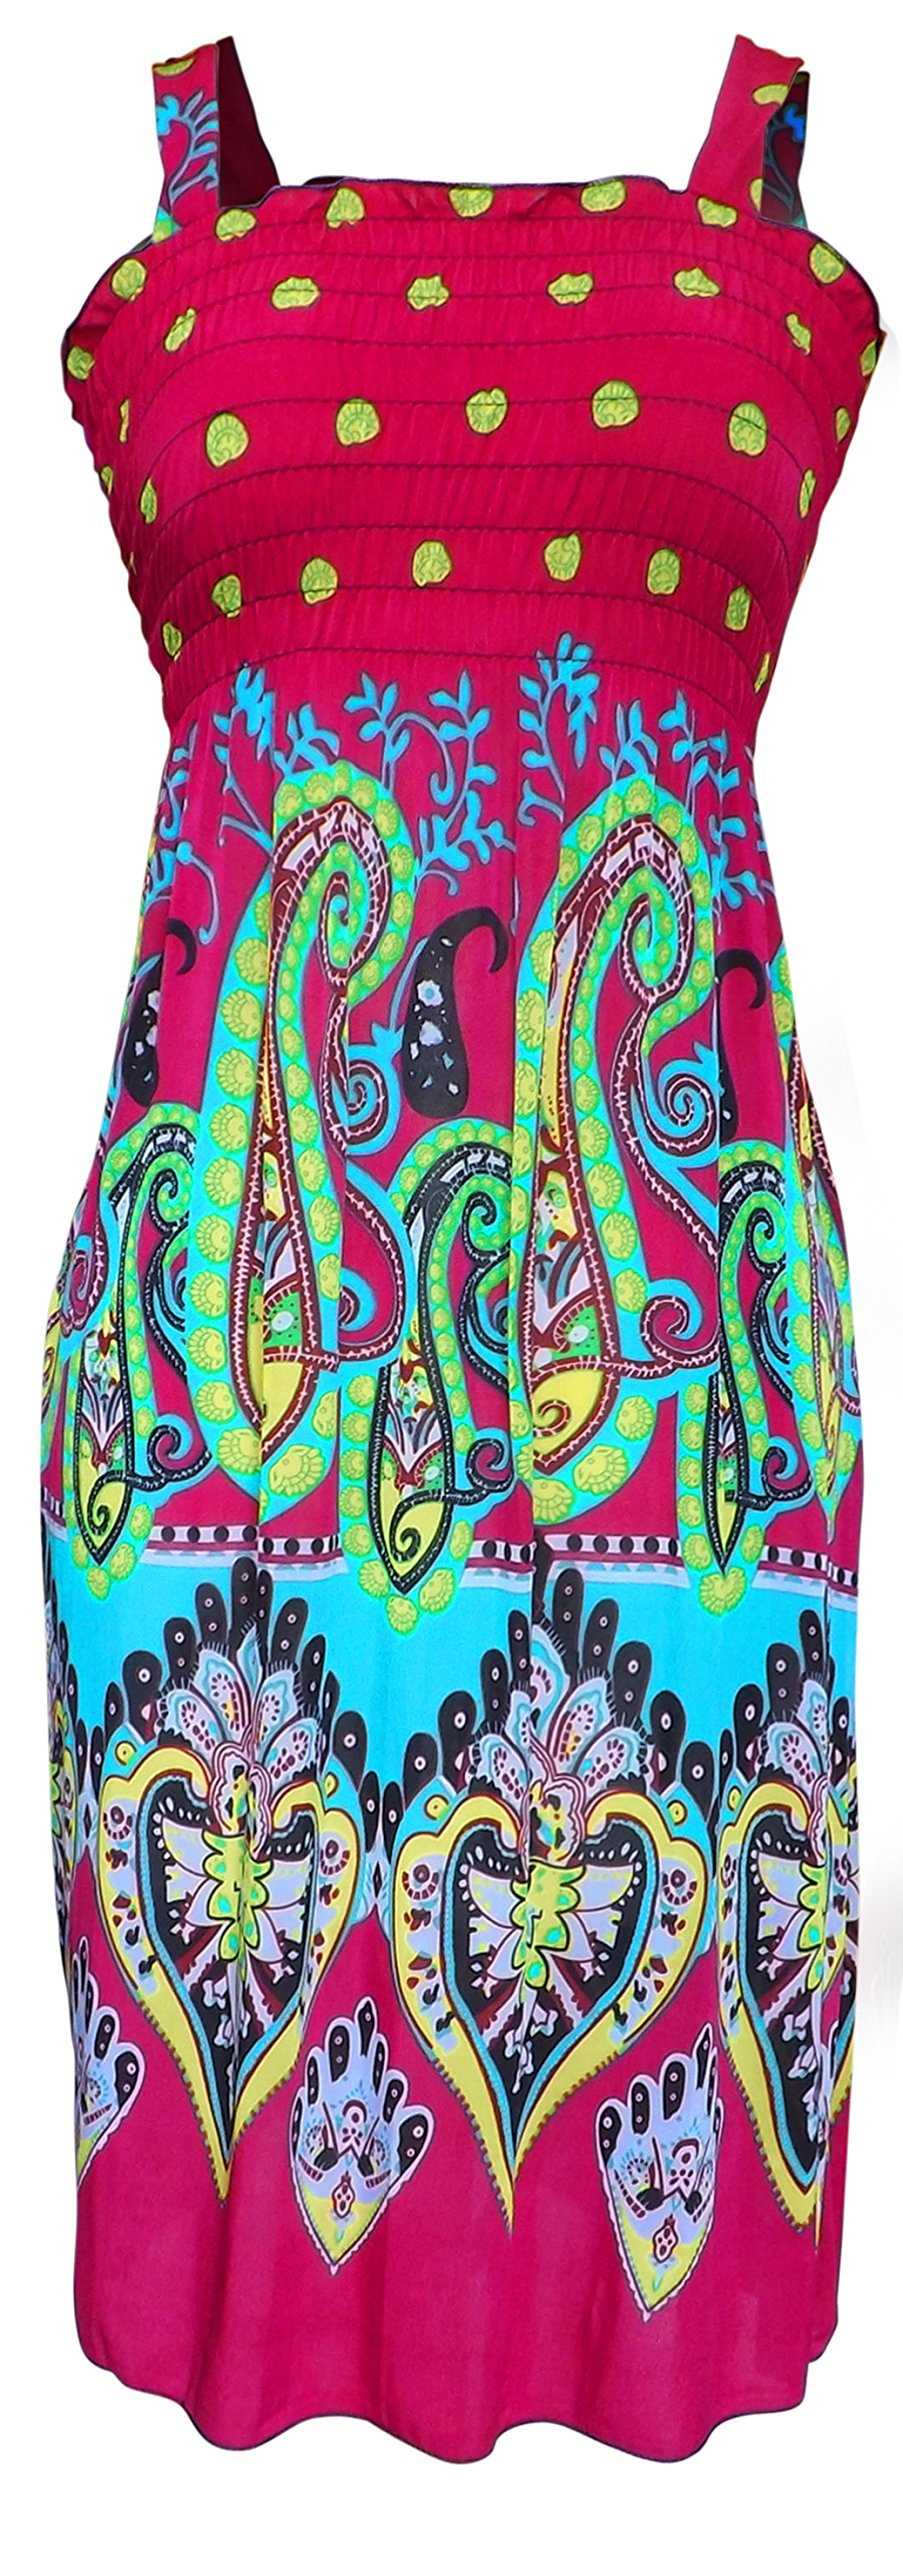 Available at Amazon: Peach Couture Women's Midi Multicolor Exotic Smocked Spring Summer Dress